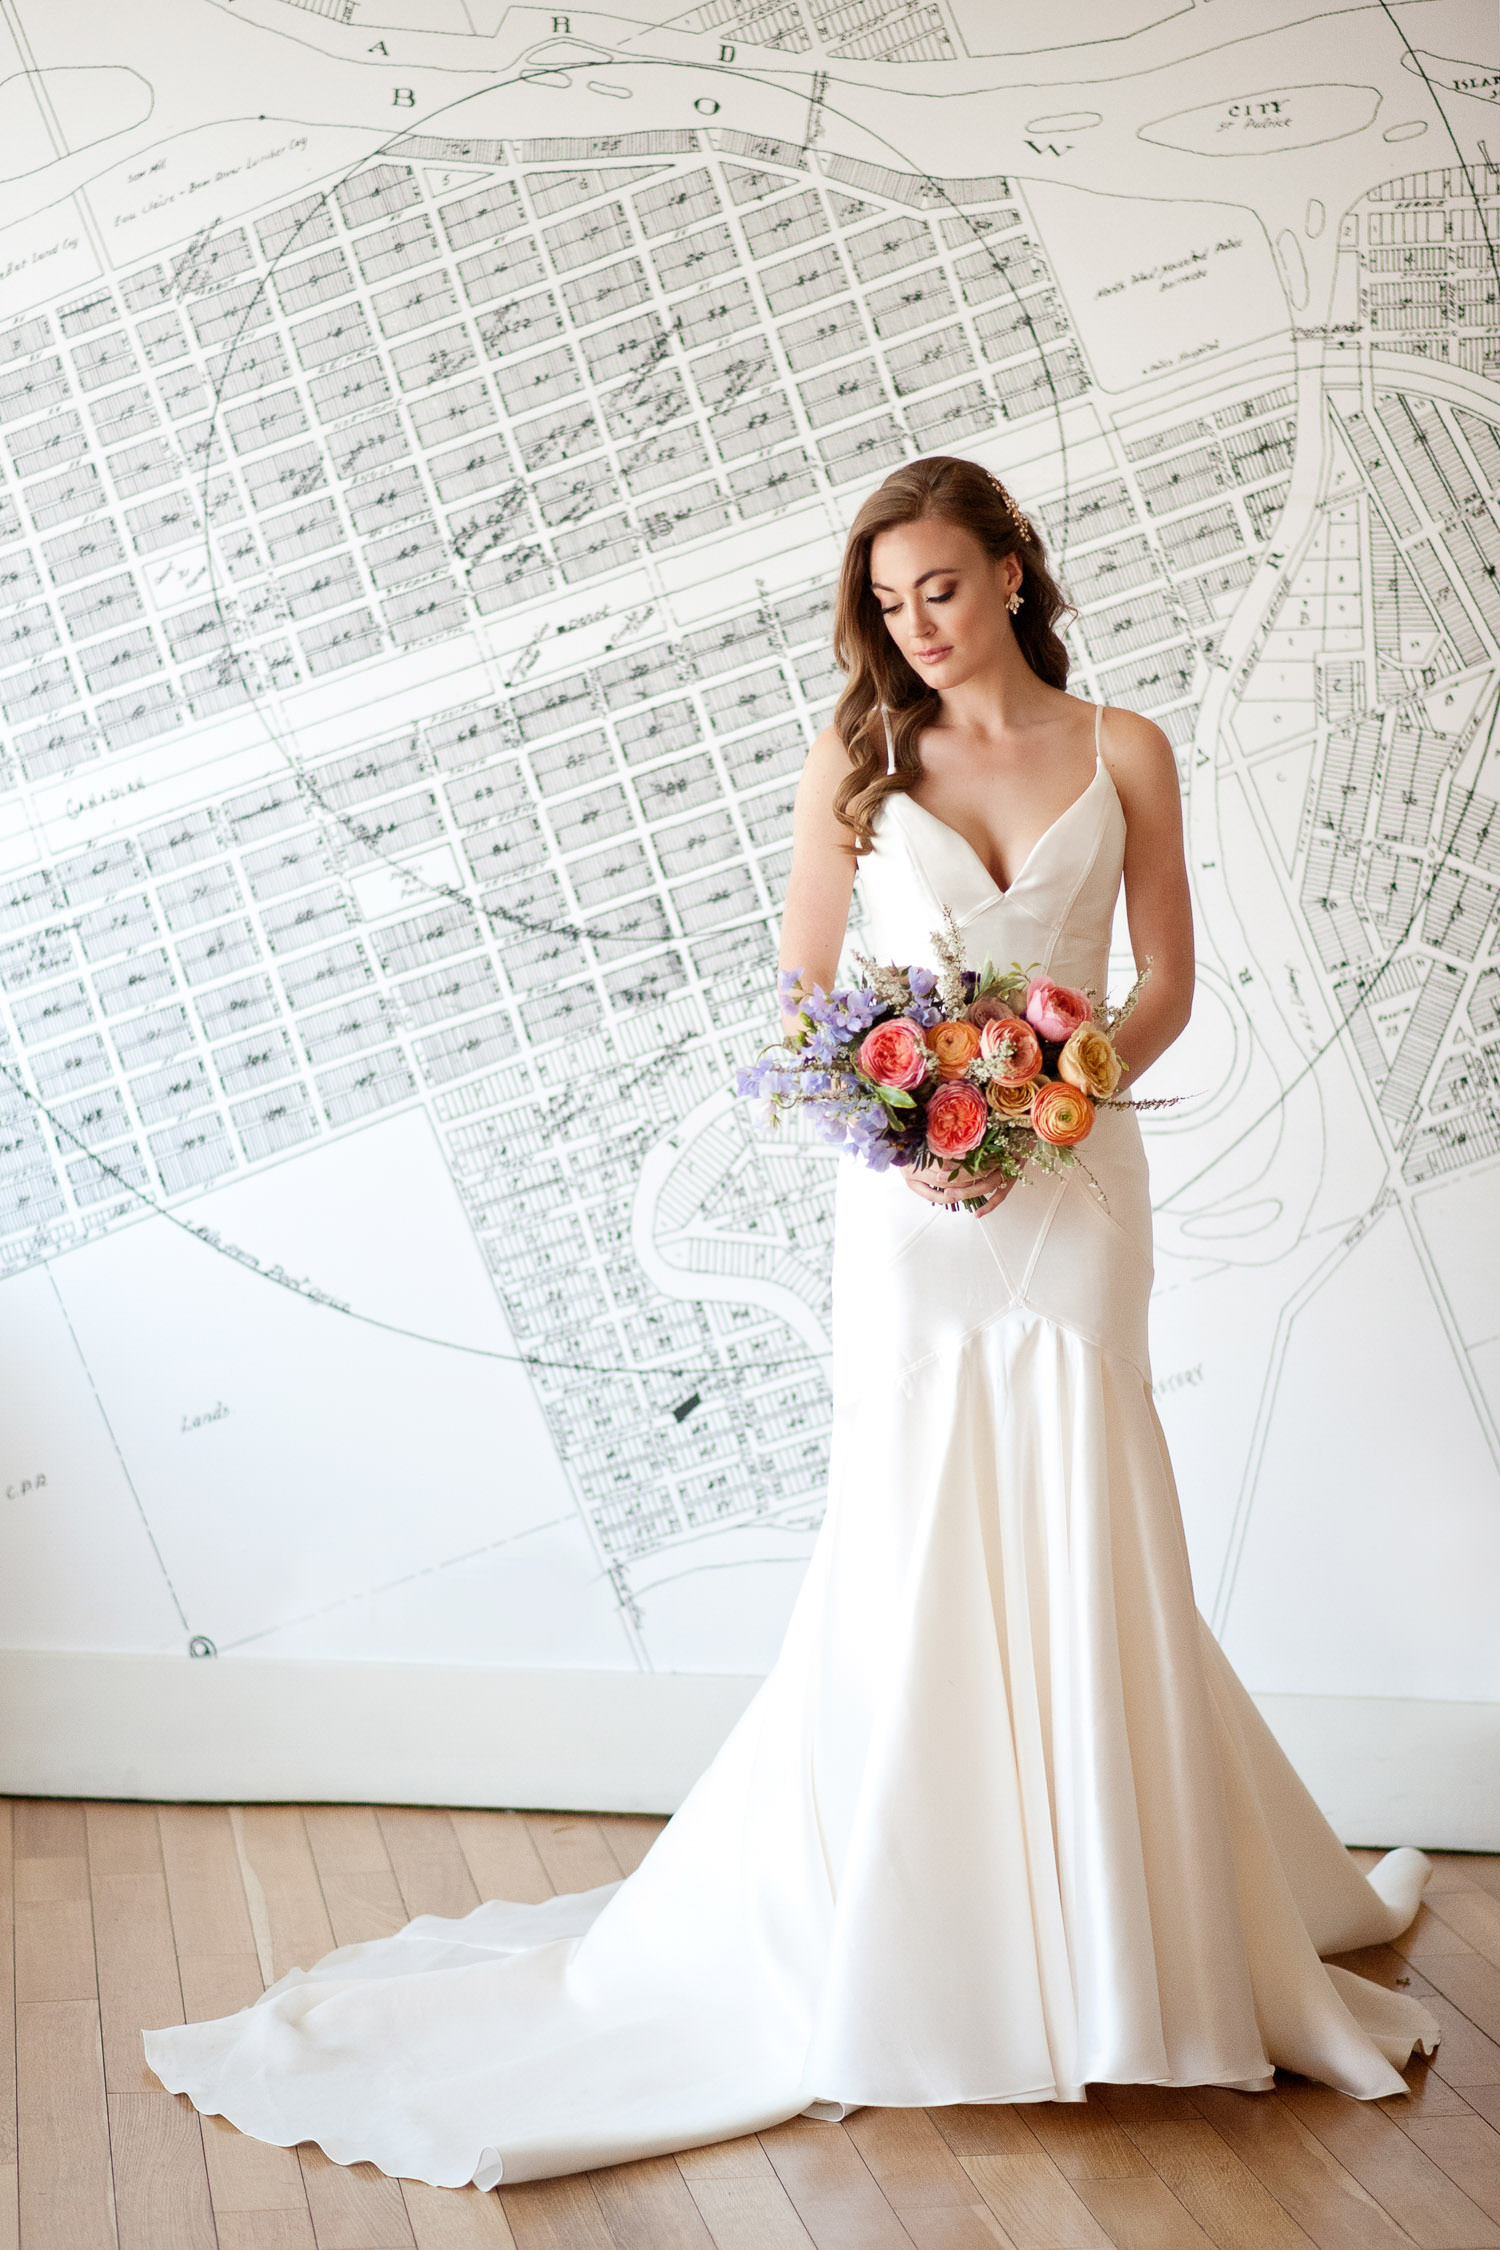 Bride at The Nash Weddings captured by Tara Whittaker Photography